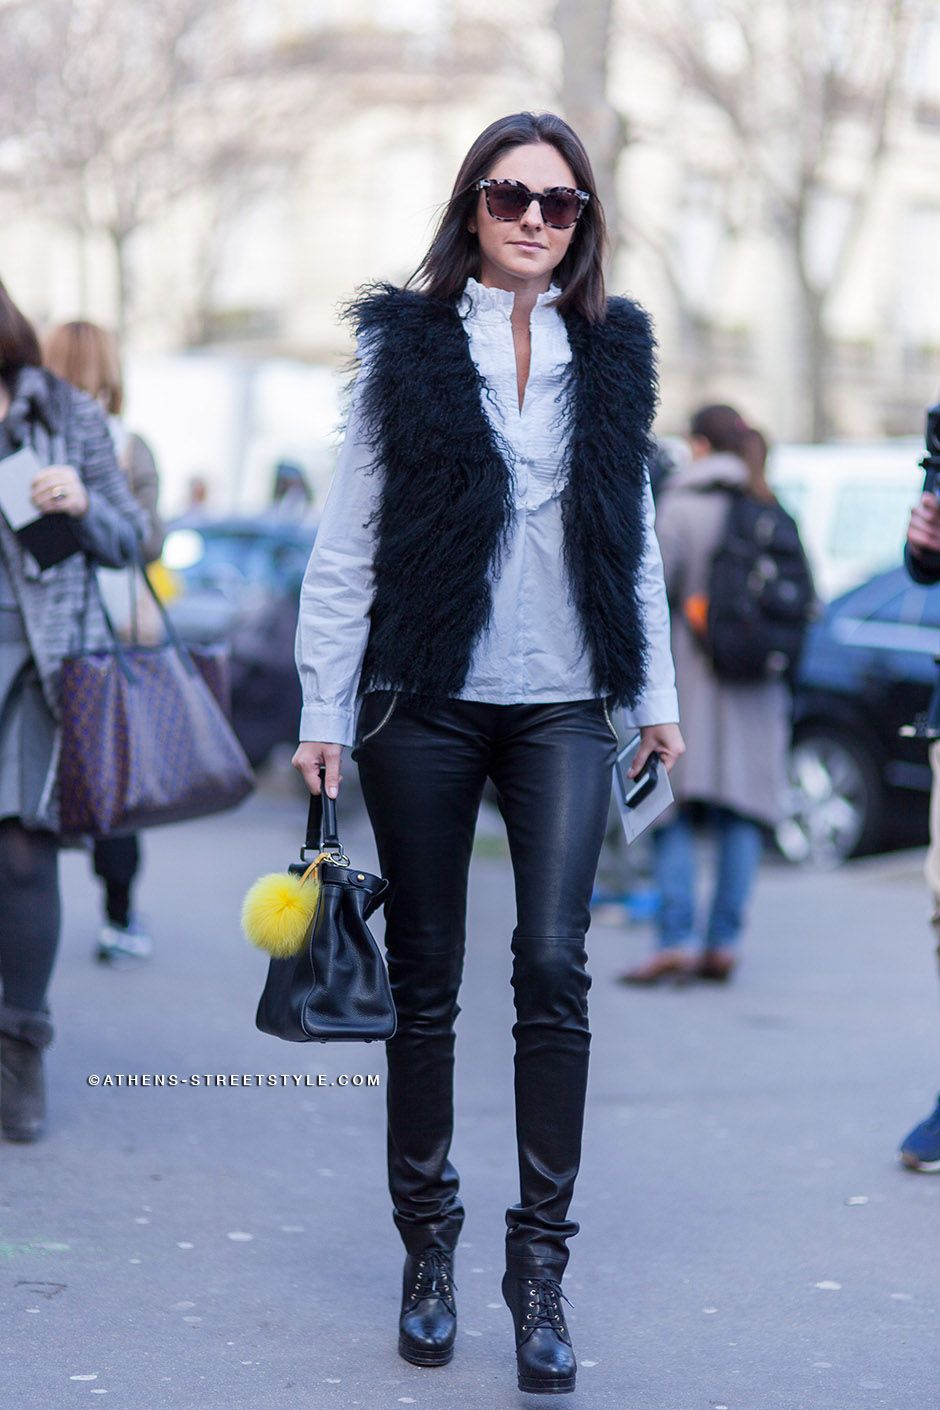 Paris Fashion Week Fall 2014 Street Style - Photo ©ATHENS ...